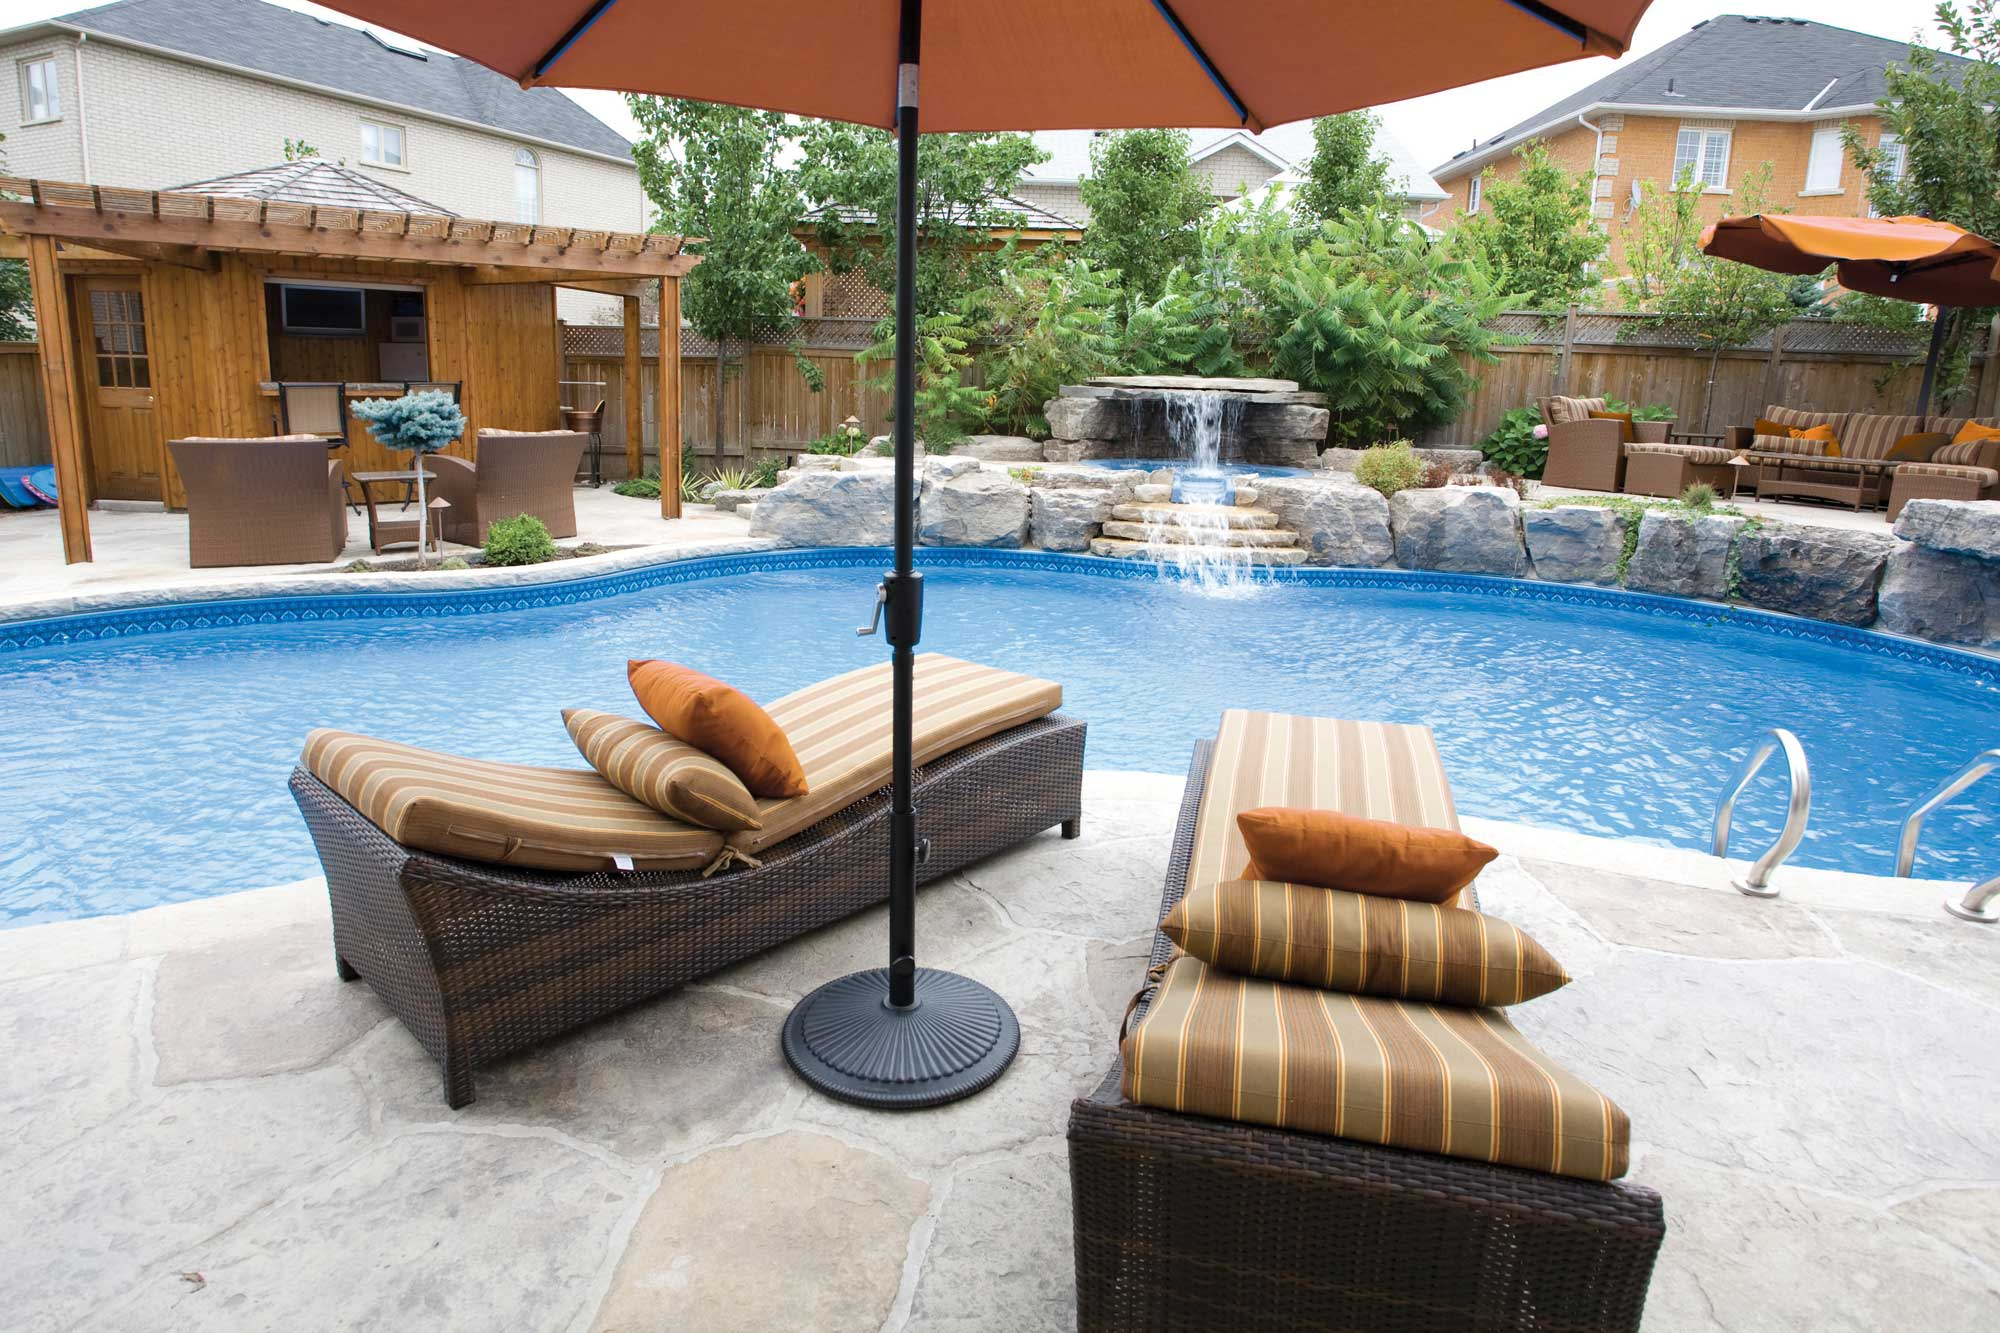 poolside furniture is a great addition